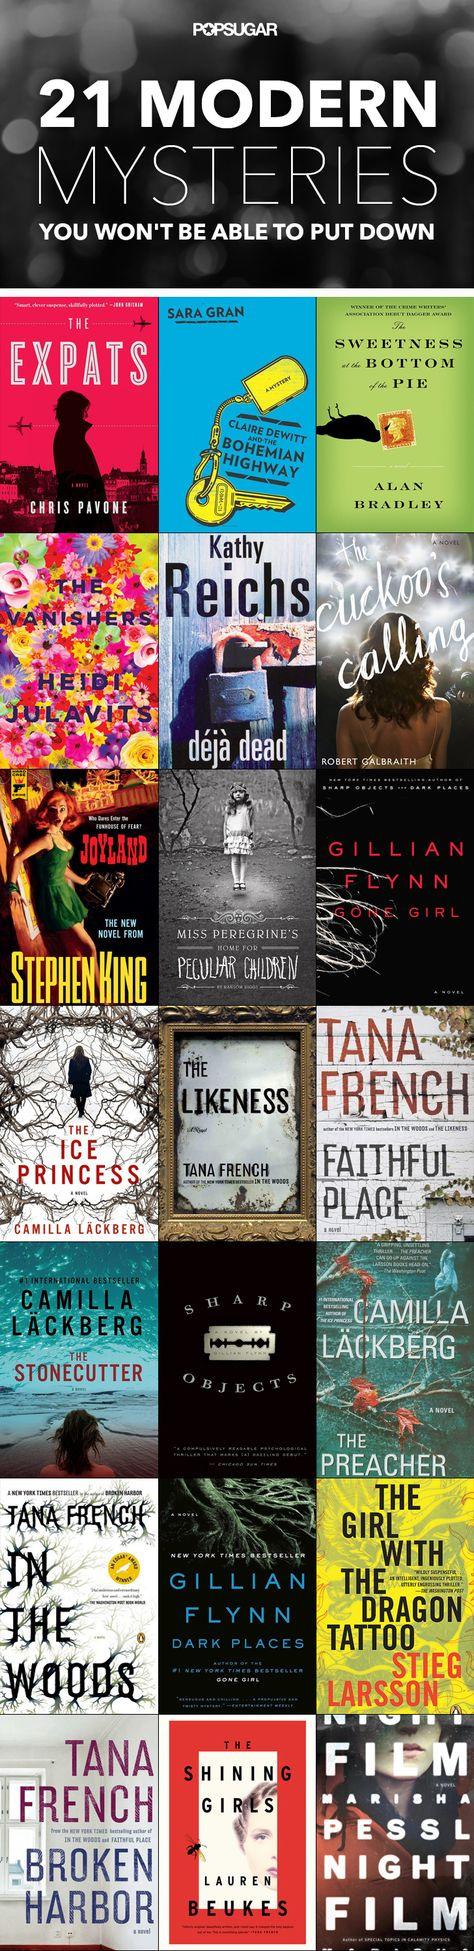 Modern mysteries, thrillers, crime dramas, and detective books!